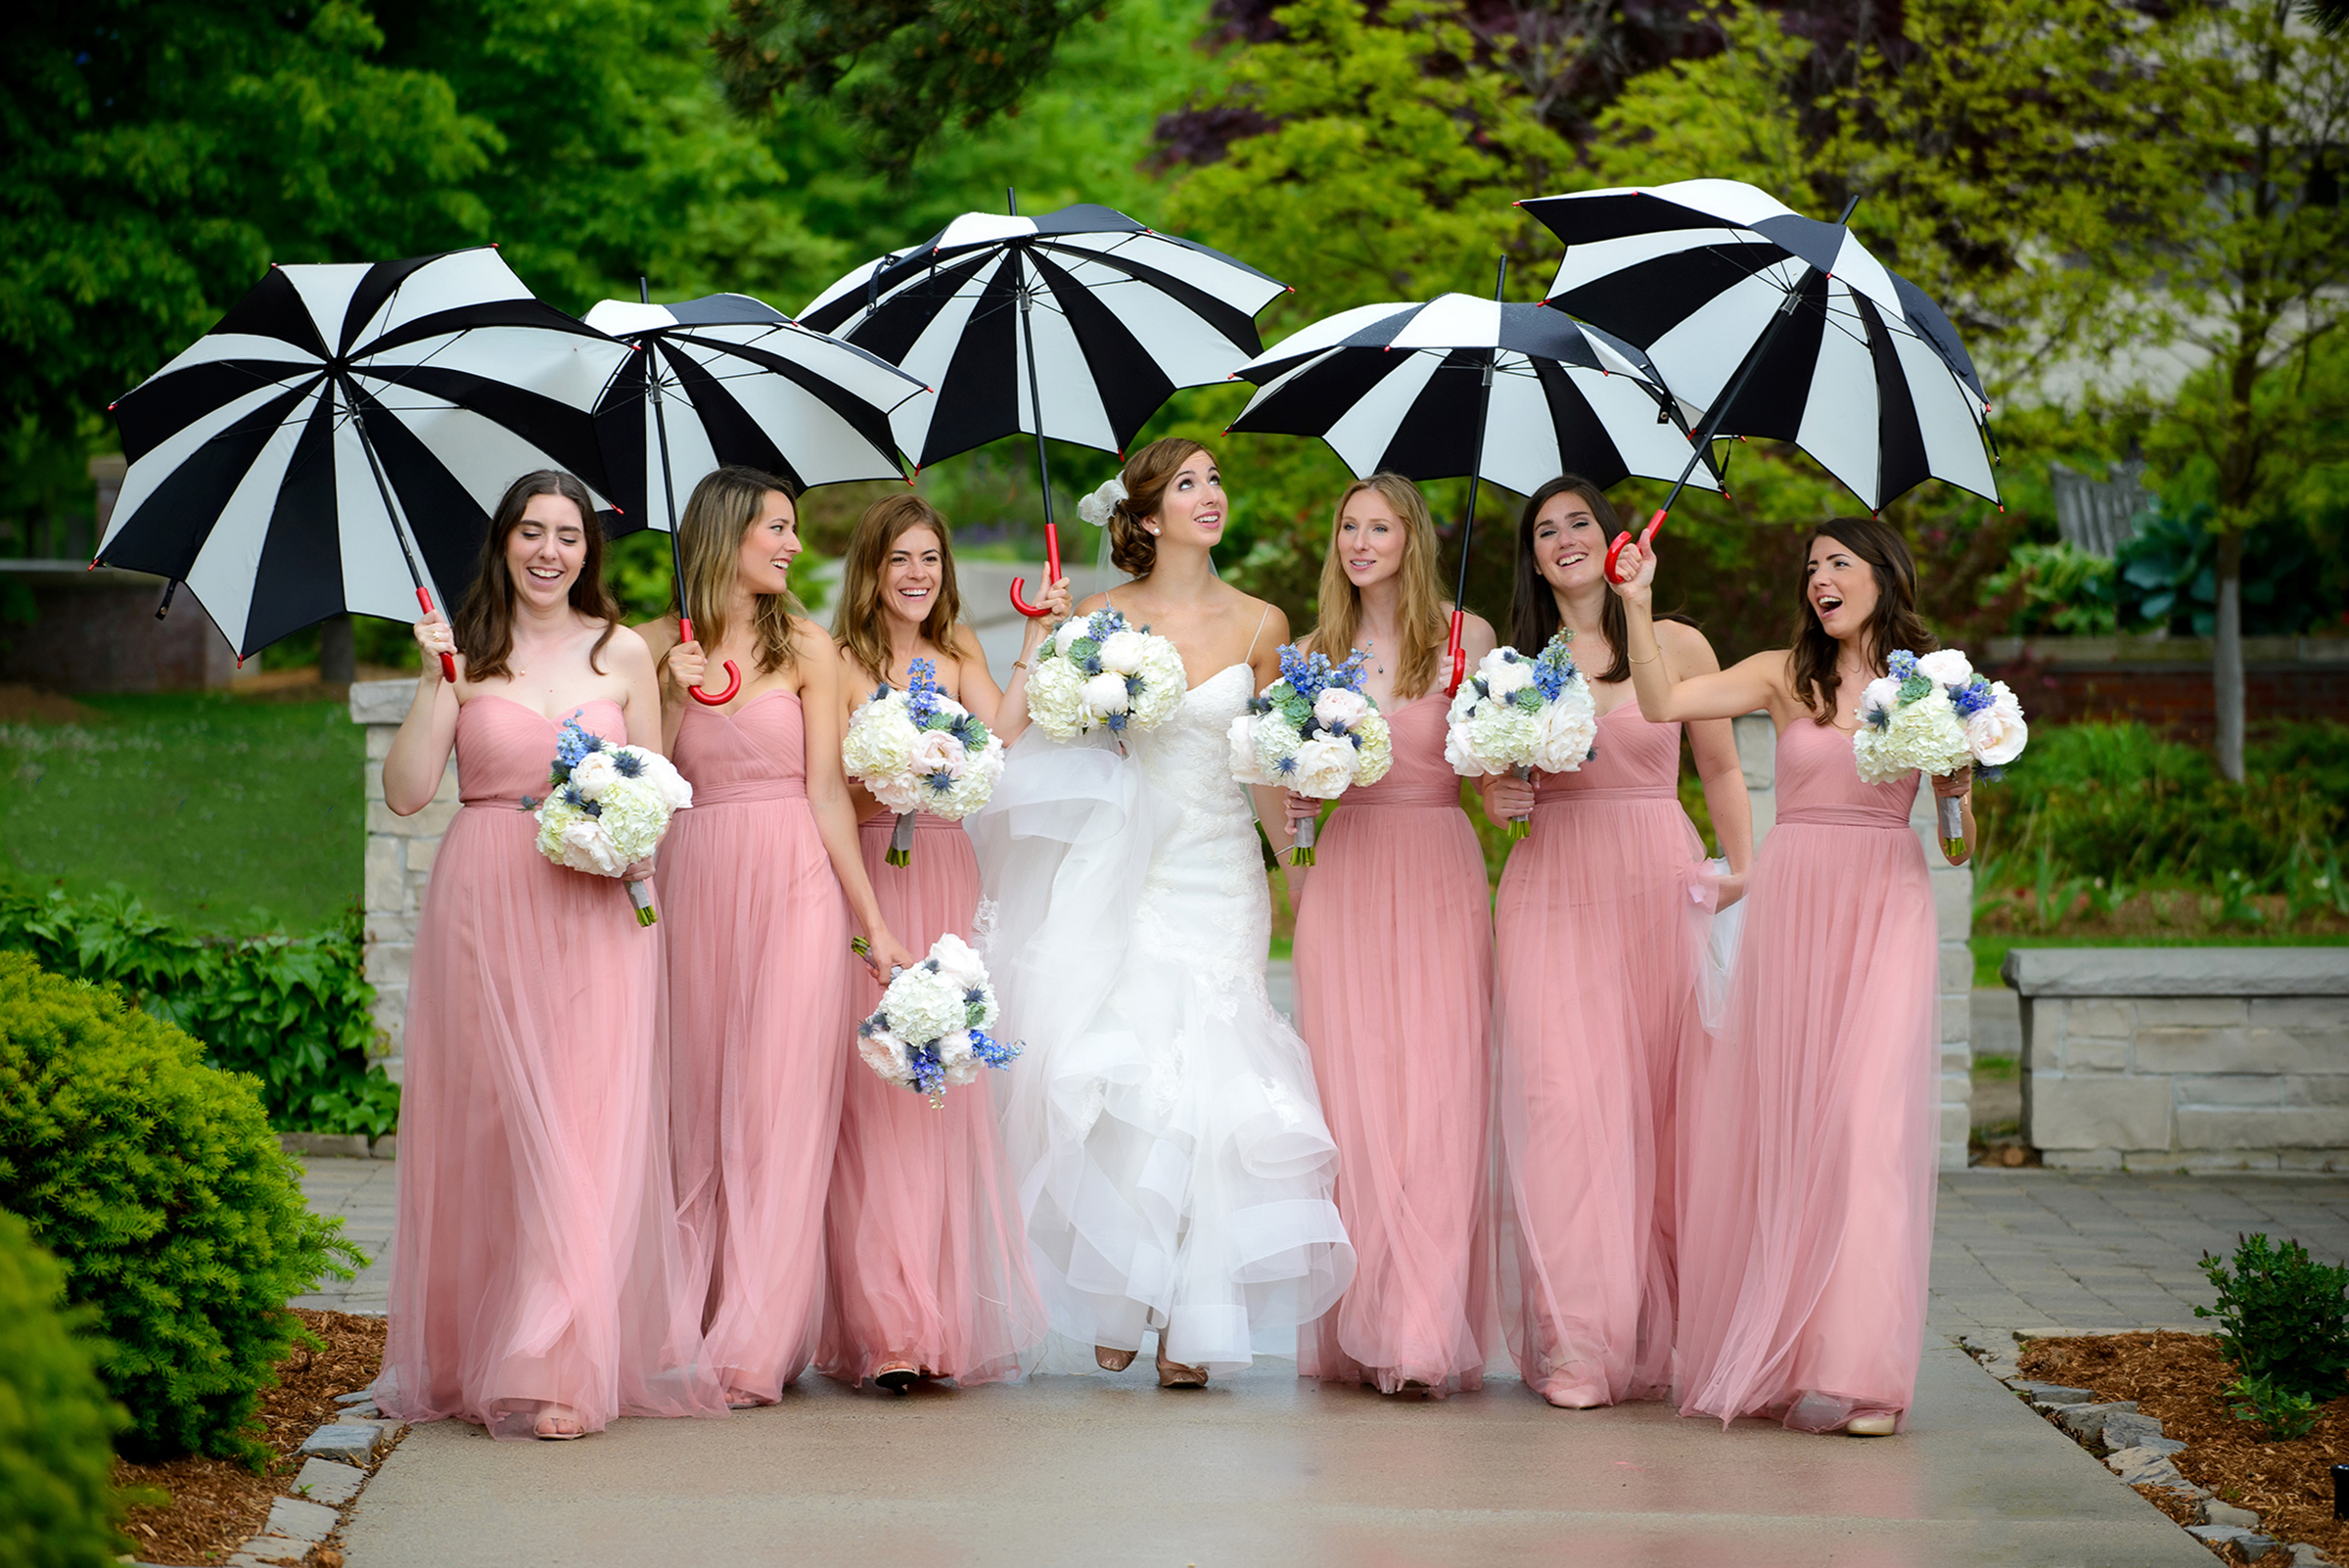 Bridal party with black and white umbrellas - photo by Storey Wilkins Photography